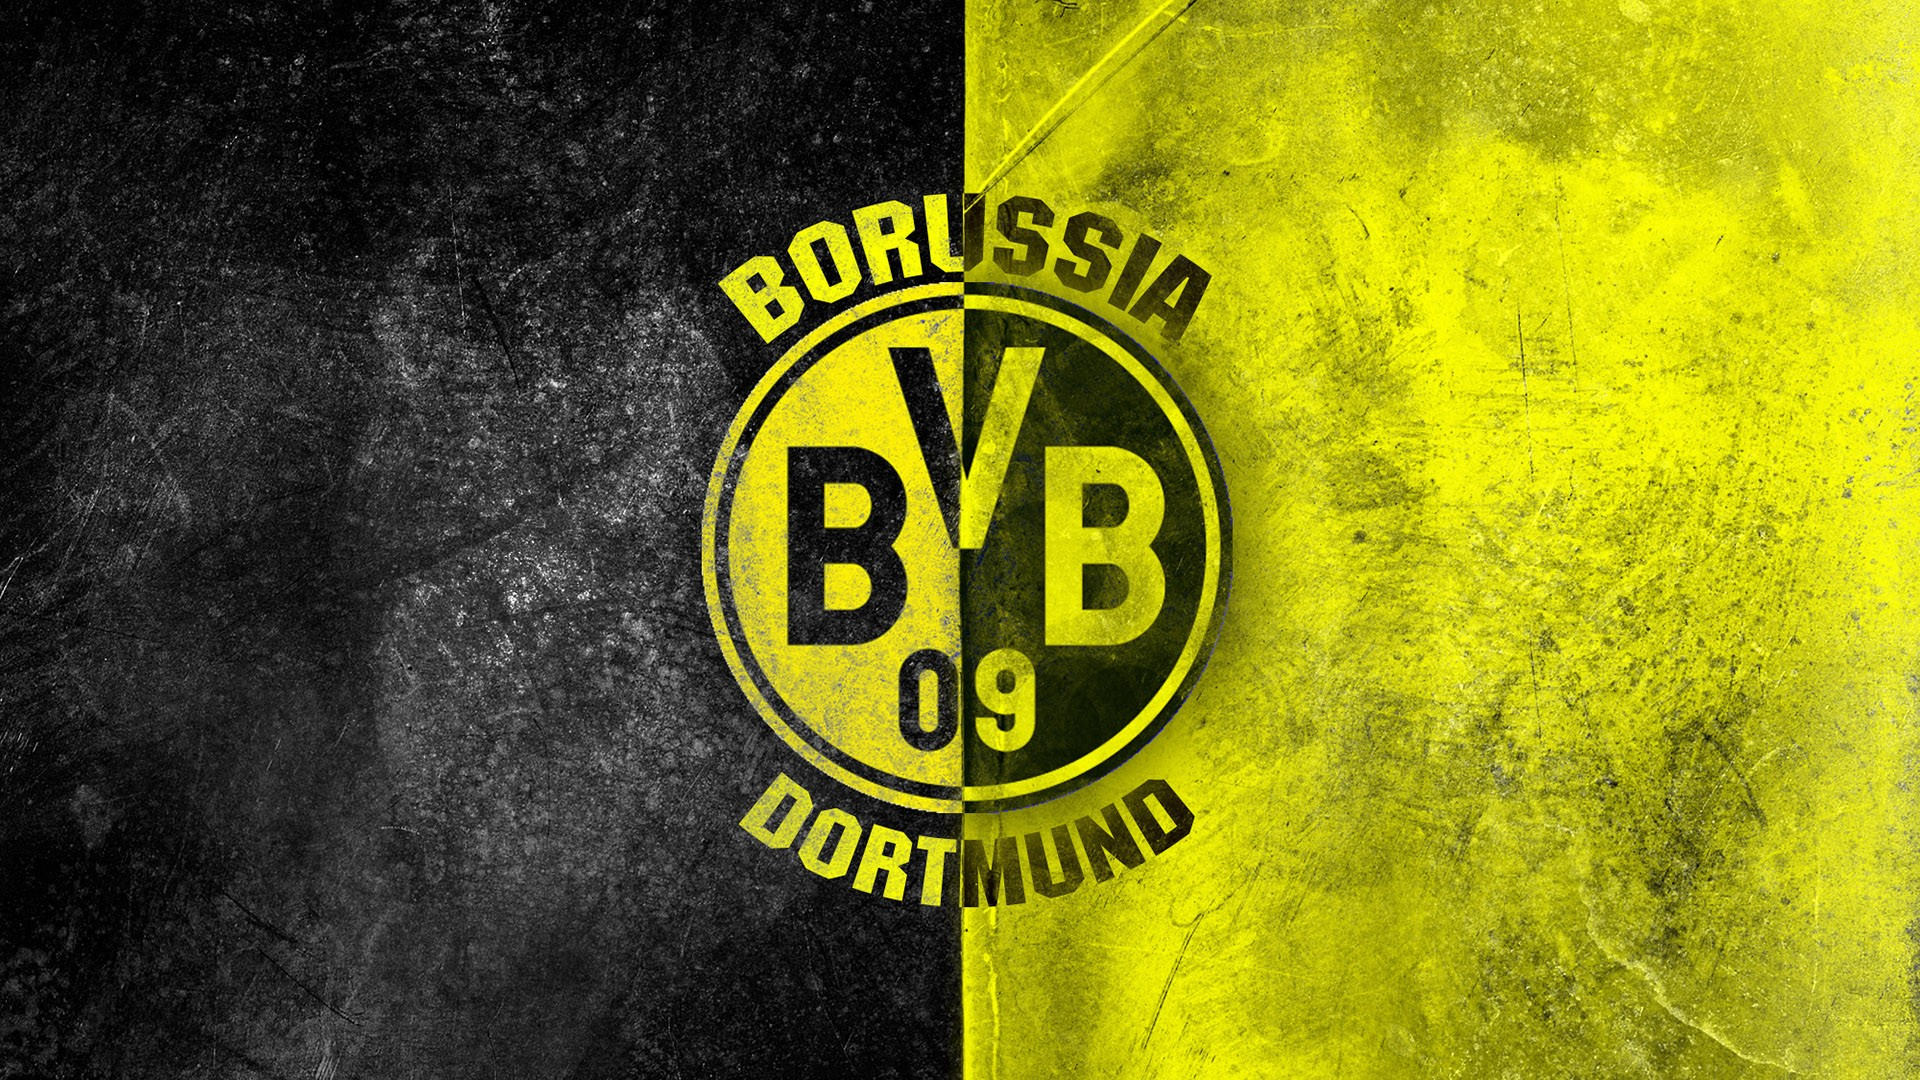 Borussia Dortmund Wallpaper Group with 72 items